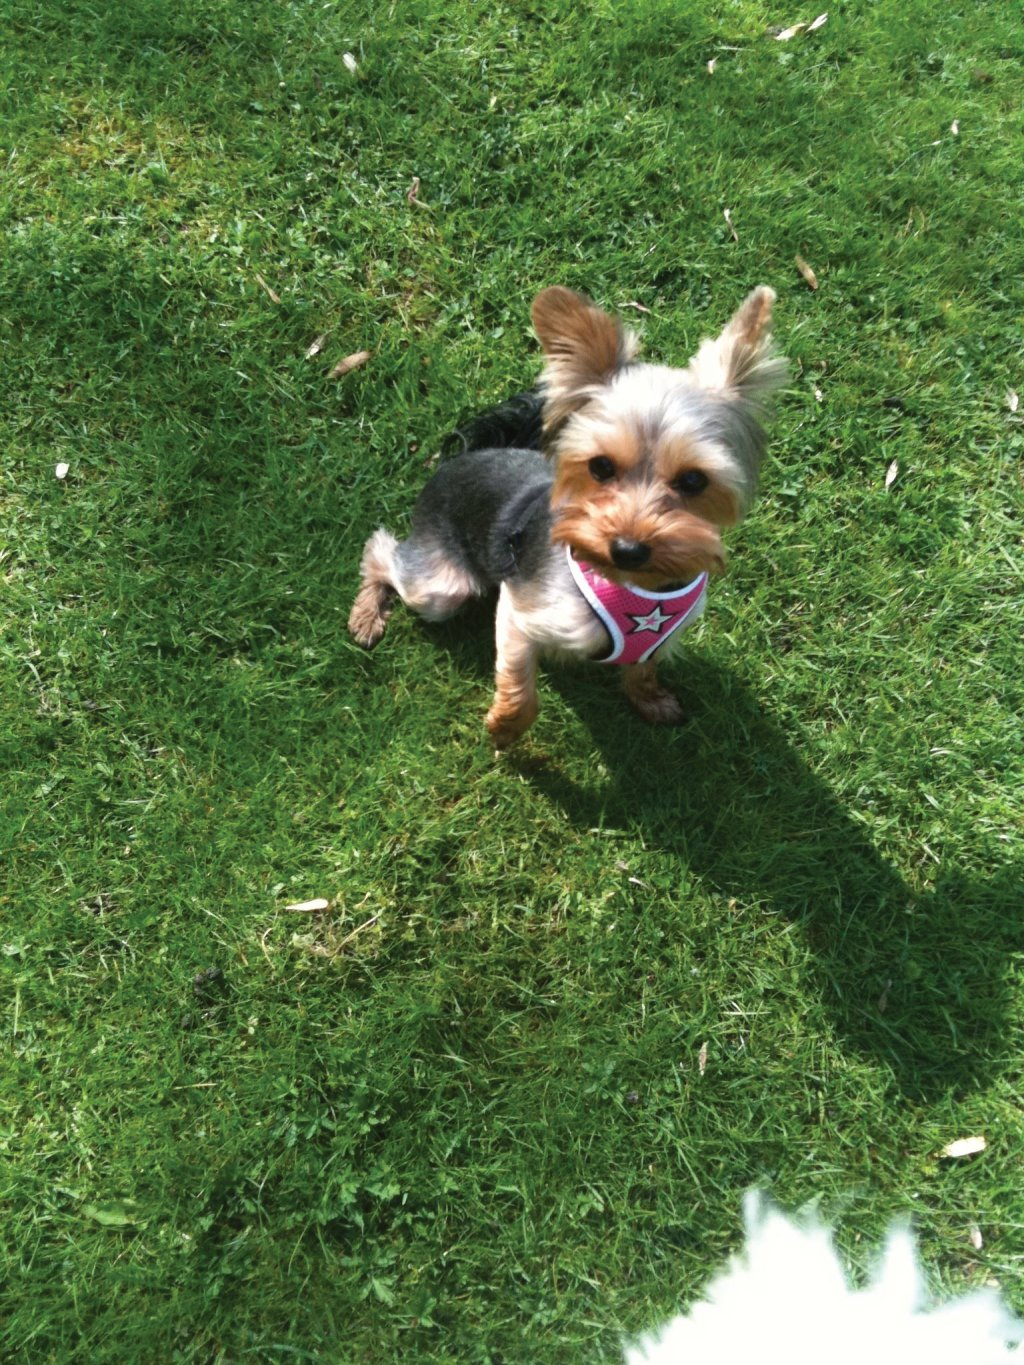 Frankie the Yorkshire Terrier